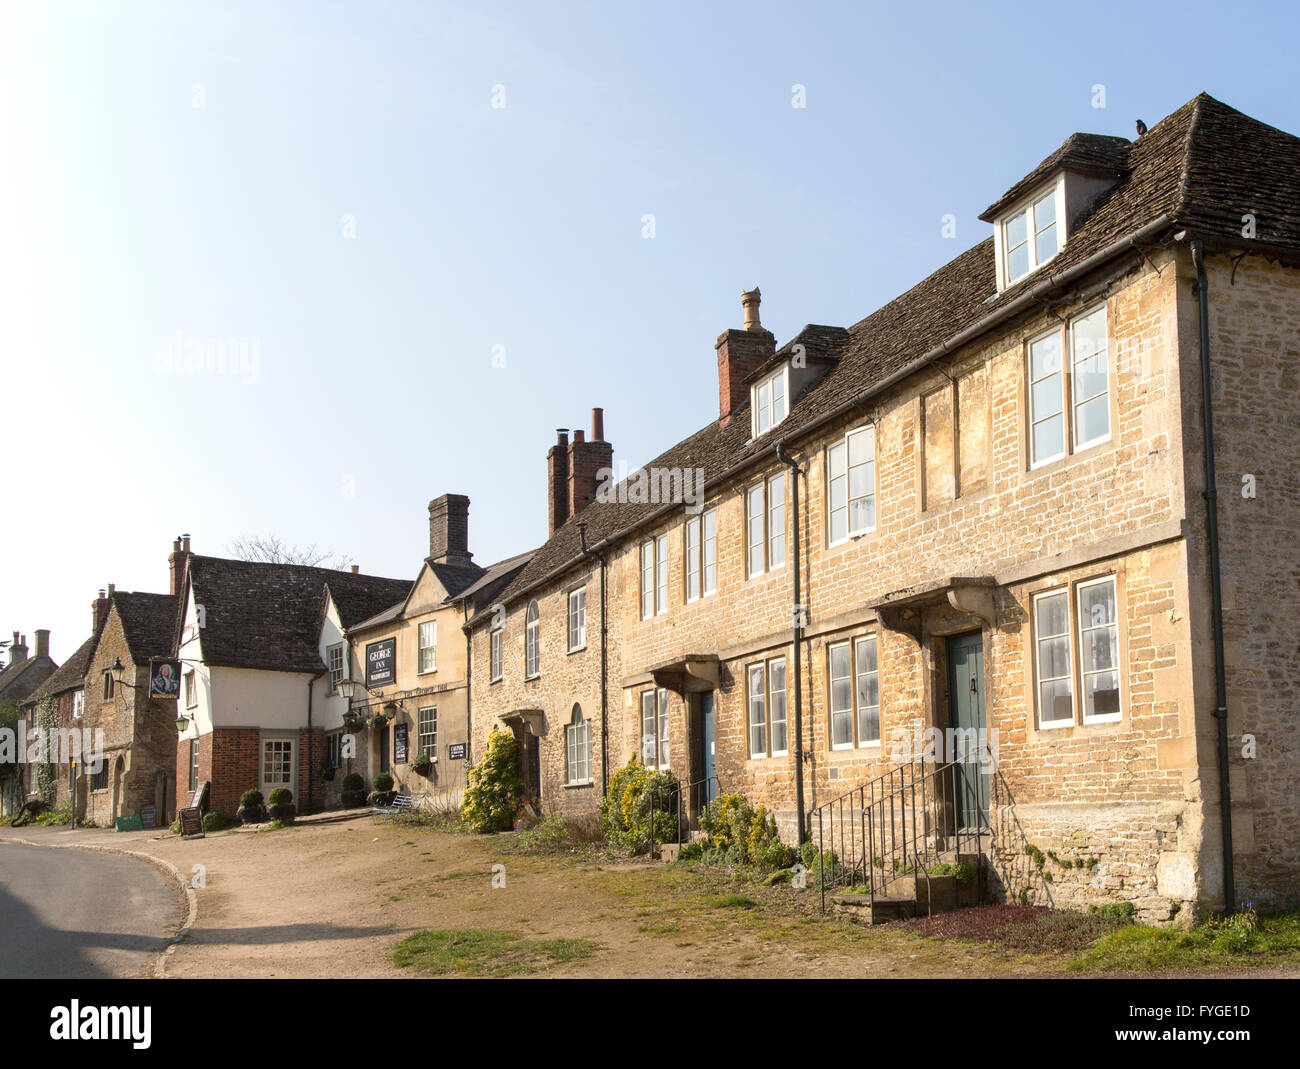 Historic houses and The George Inn at the village of Lacock, Wiltshire, England, UK - Stock Image